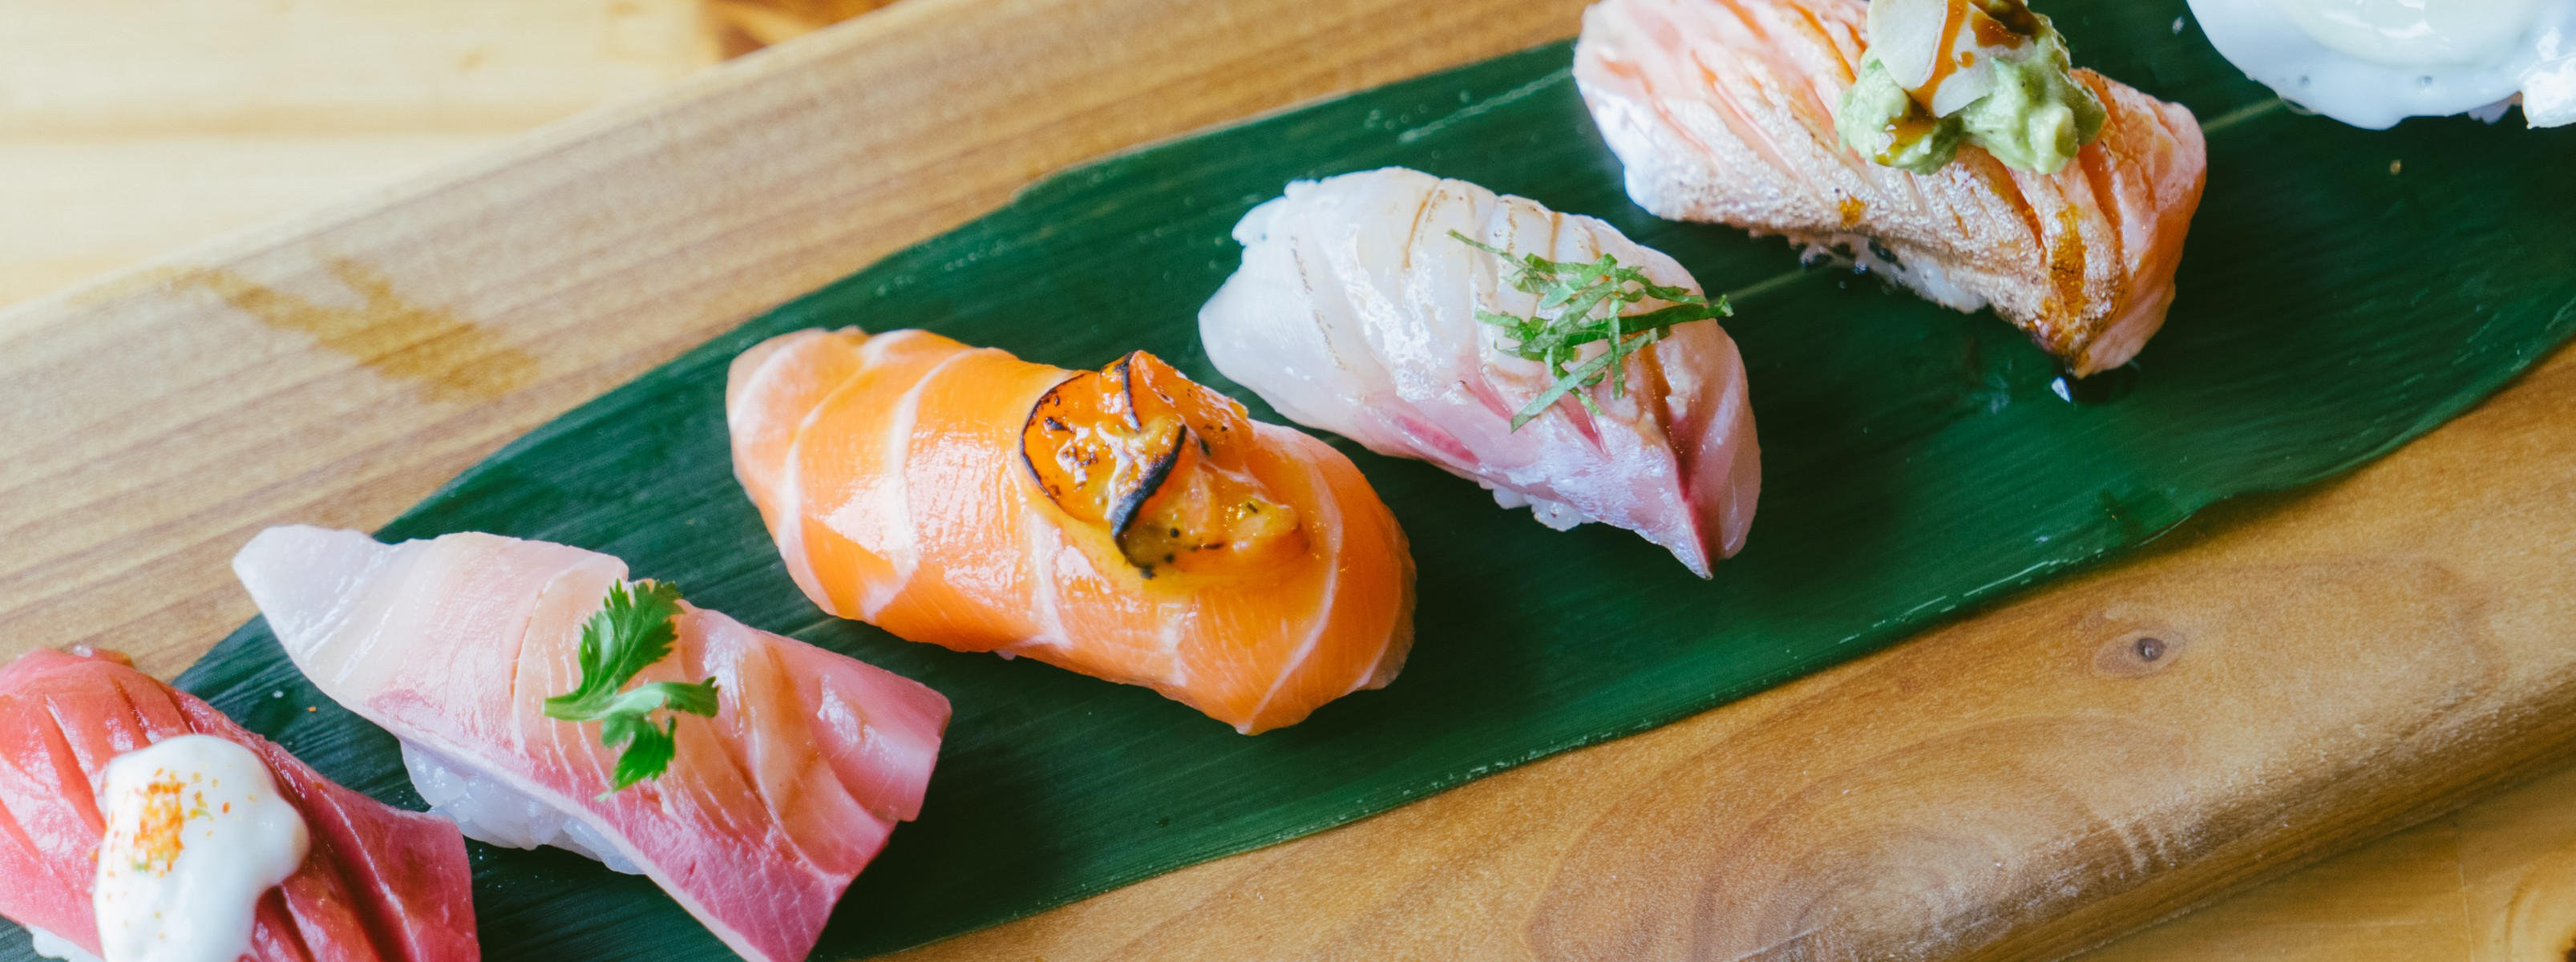 Where To Get Sushi Delivery And Takeout In NYC - New York - The Infatuation